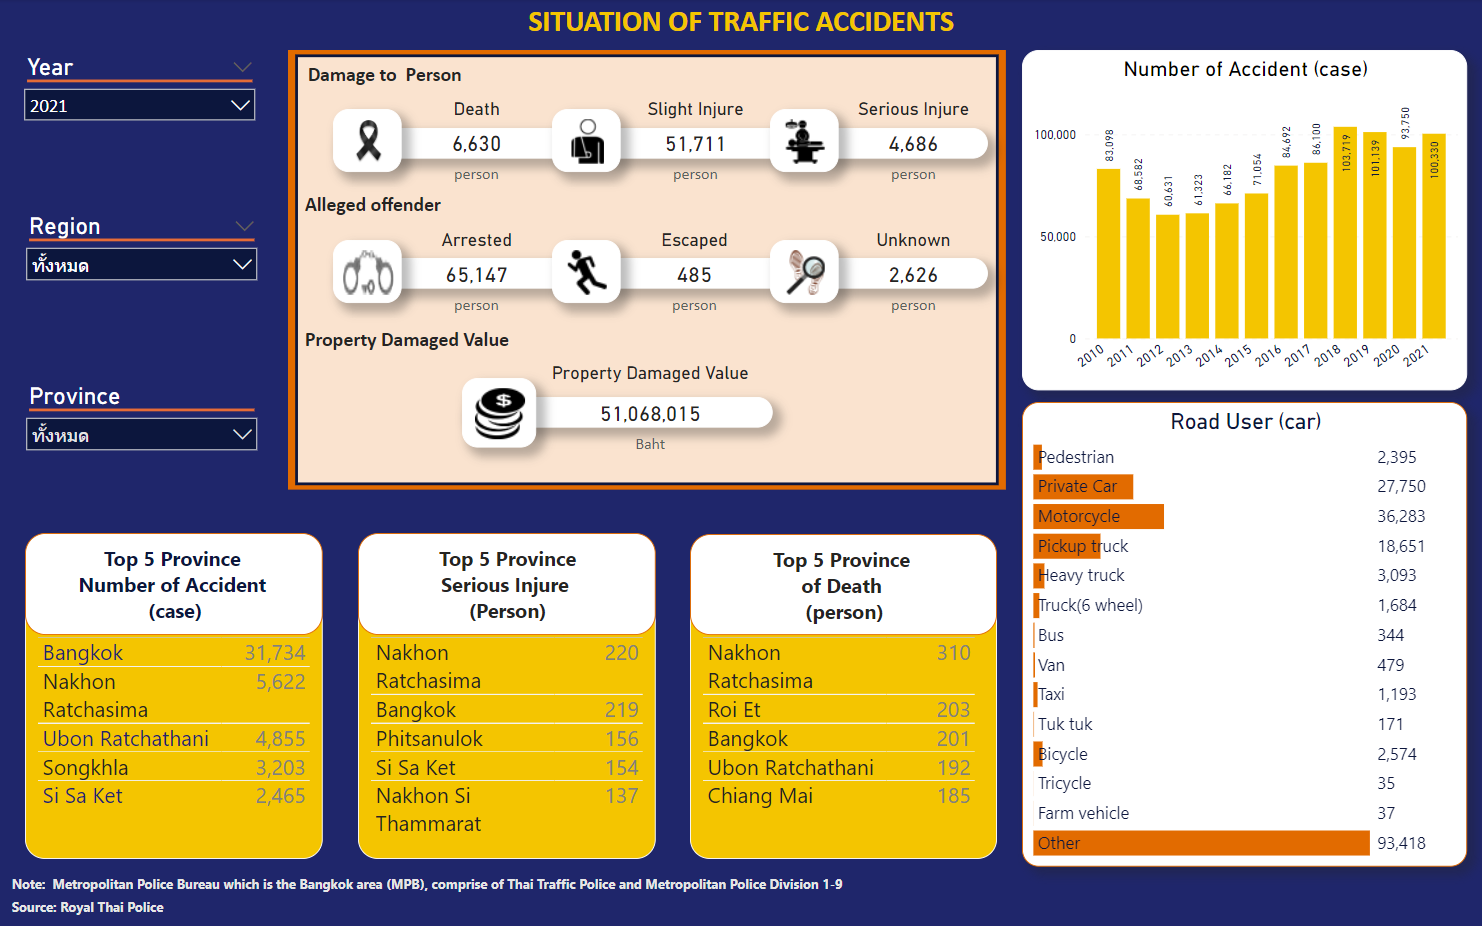 SITUATION OF TRAFFIC ACCIDENTS